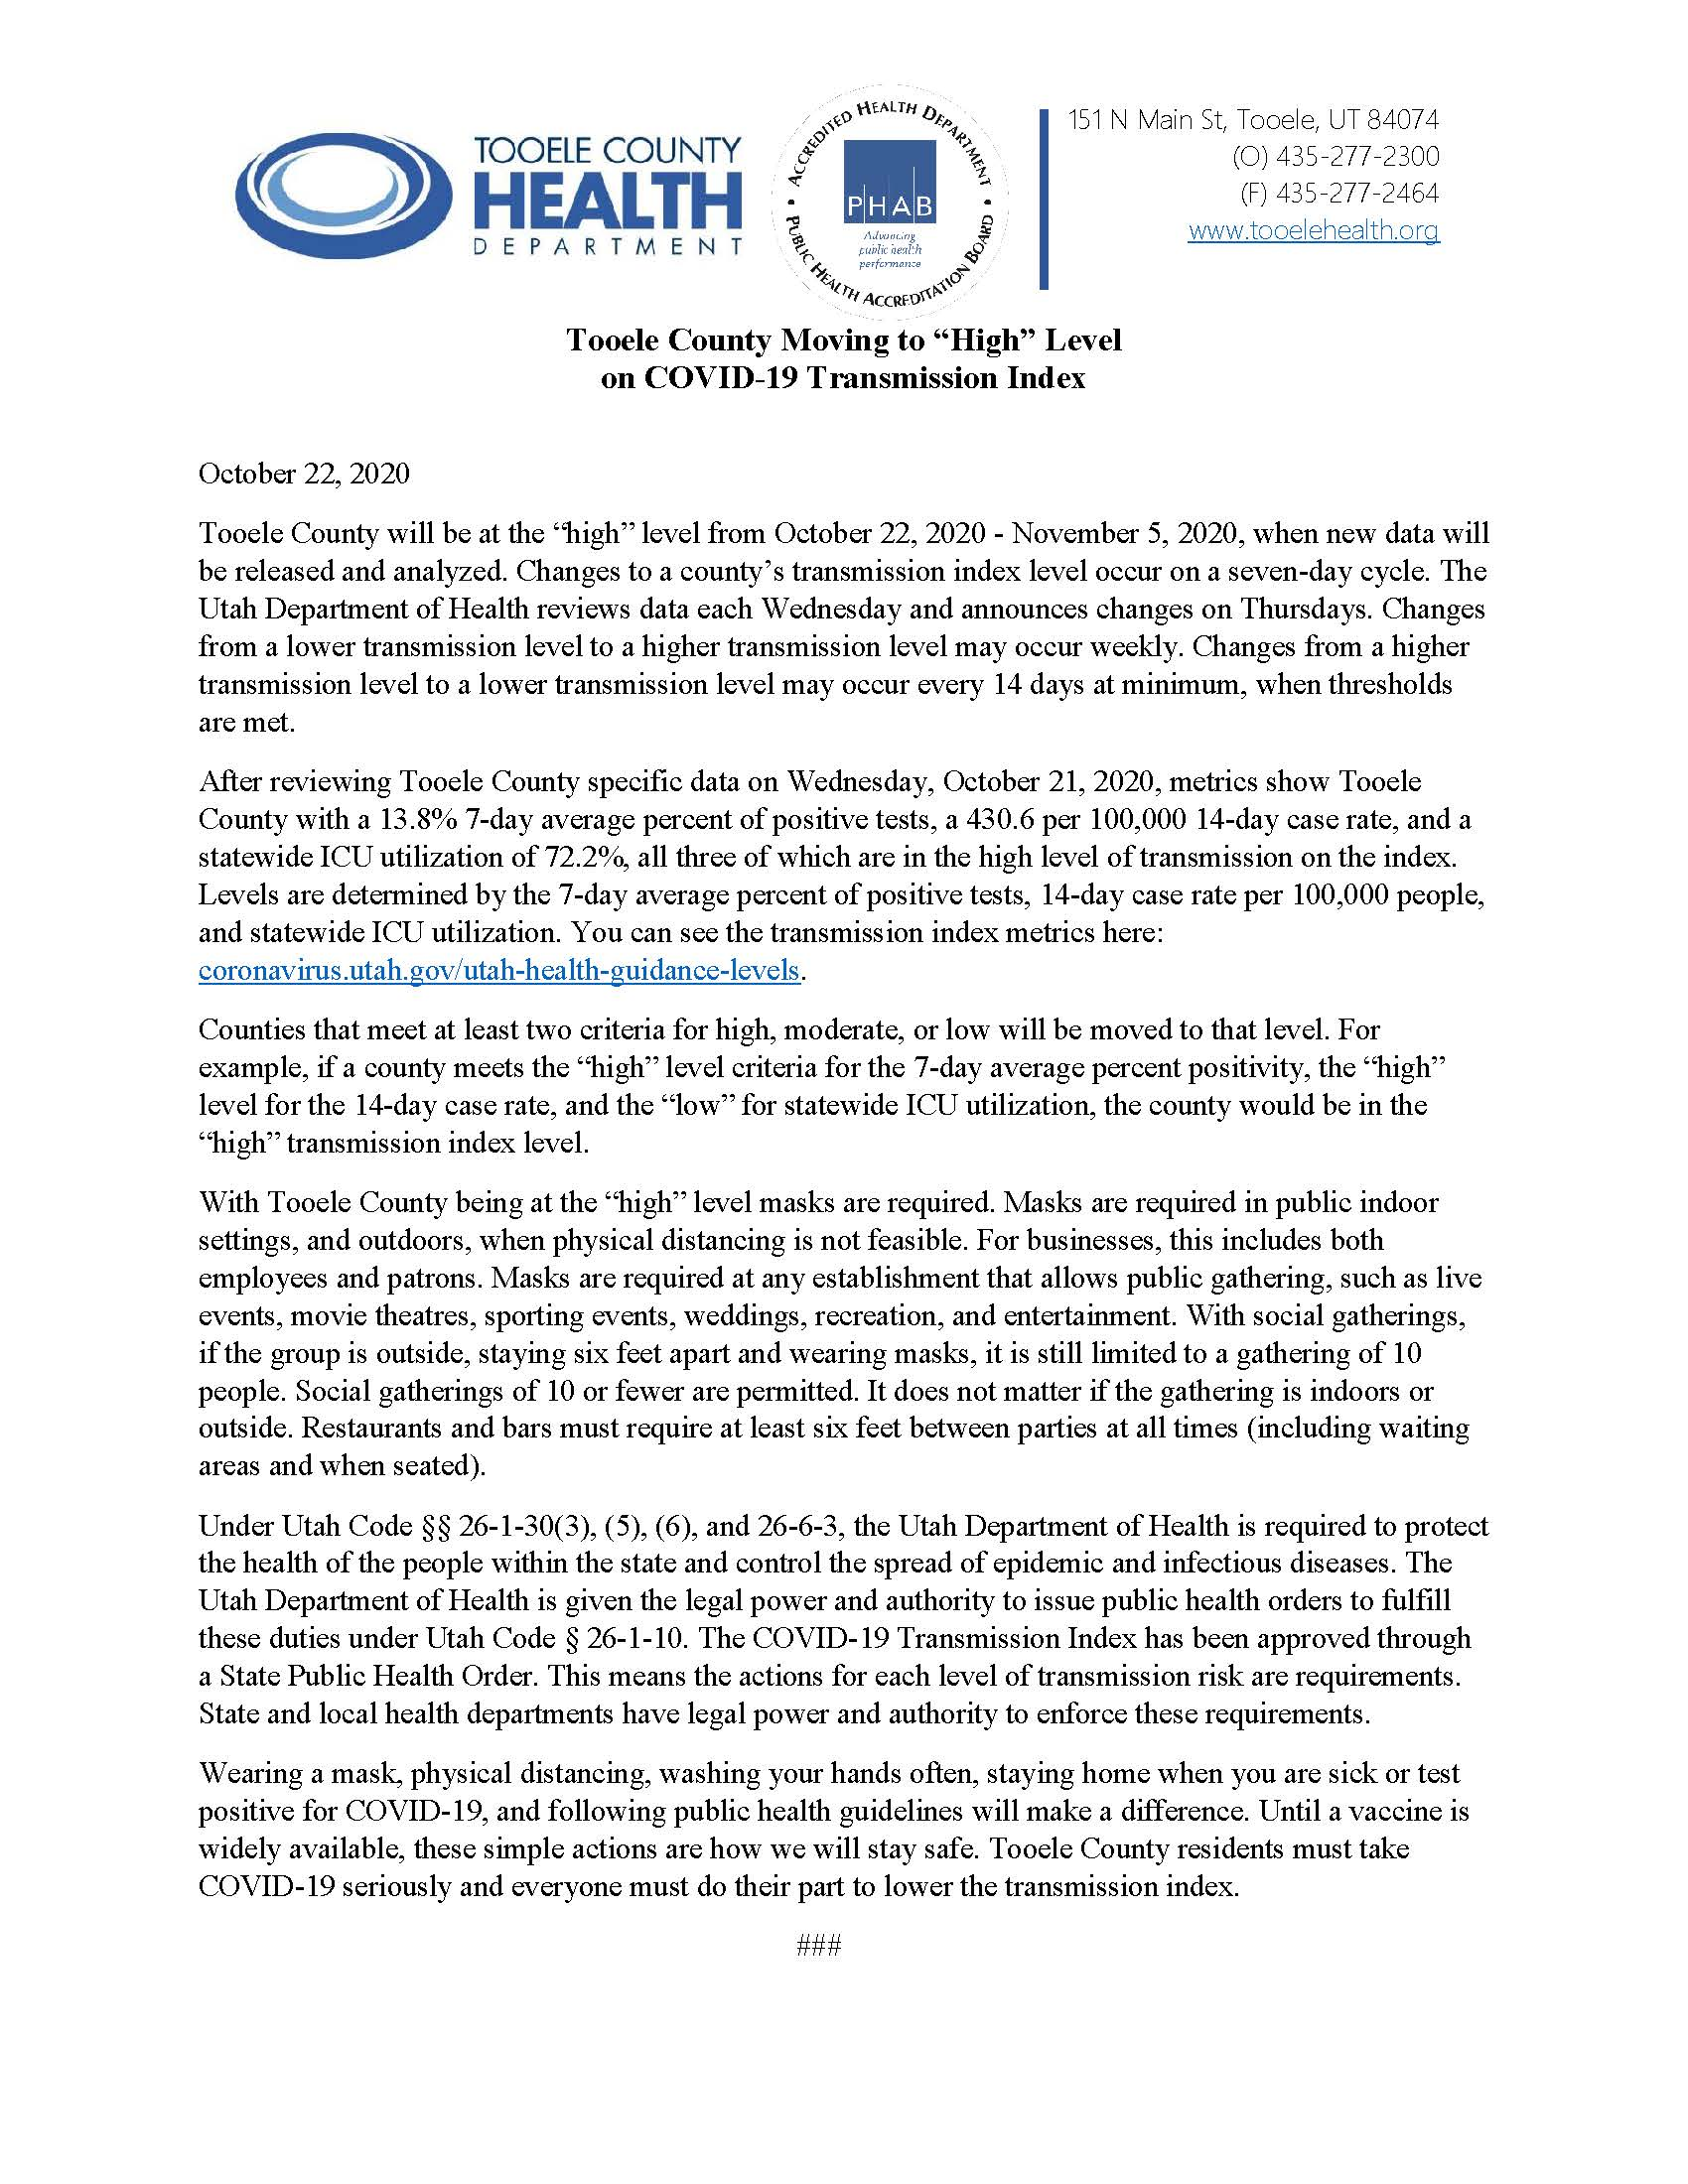 Press Release on Tooele County at High Level on Transmission Index 10-22-2020